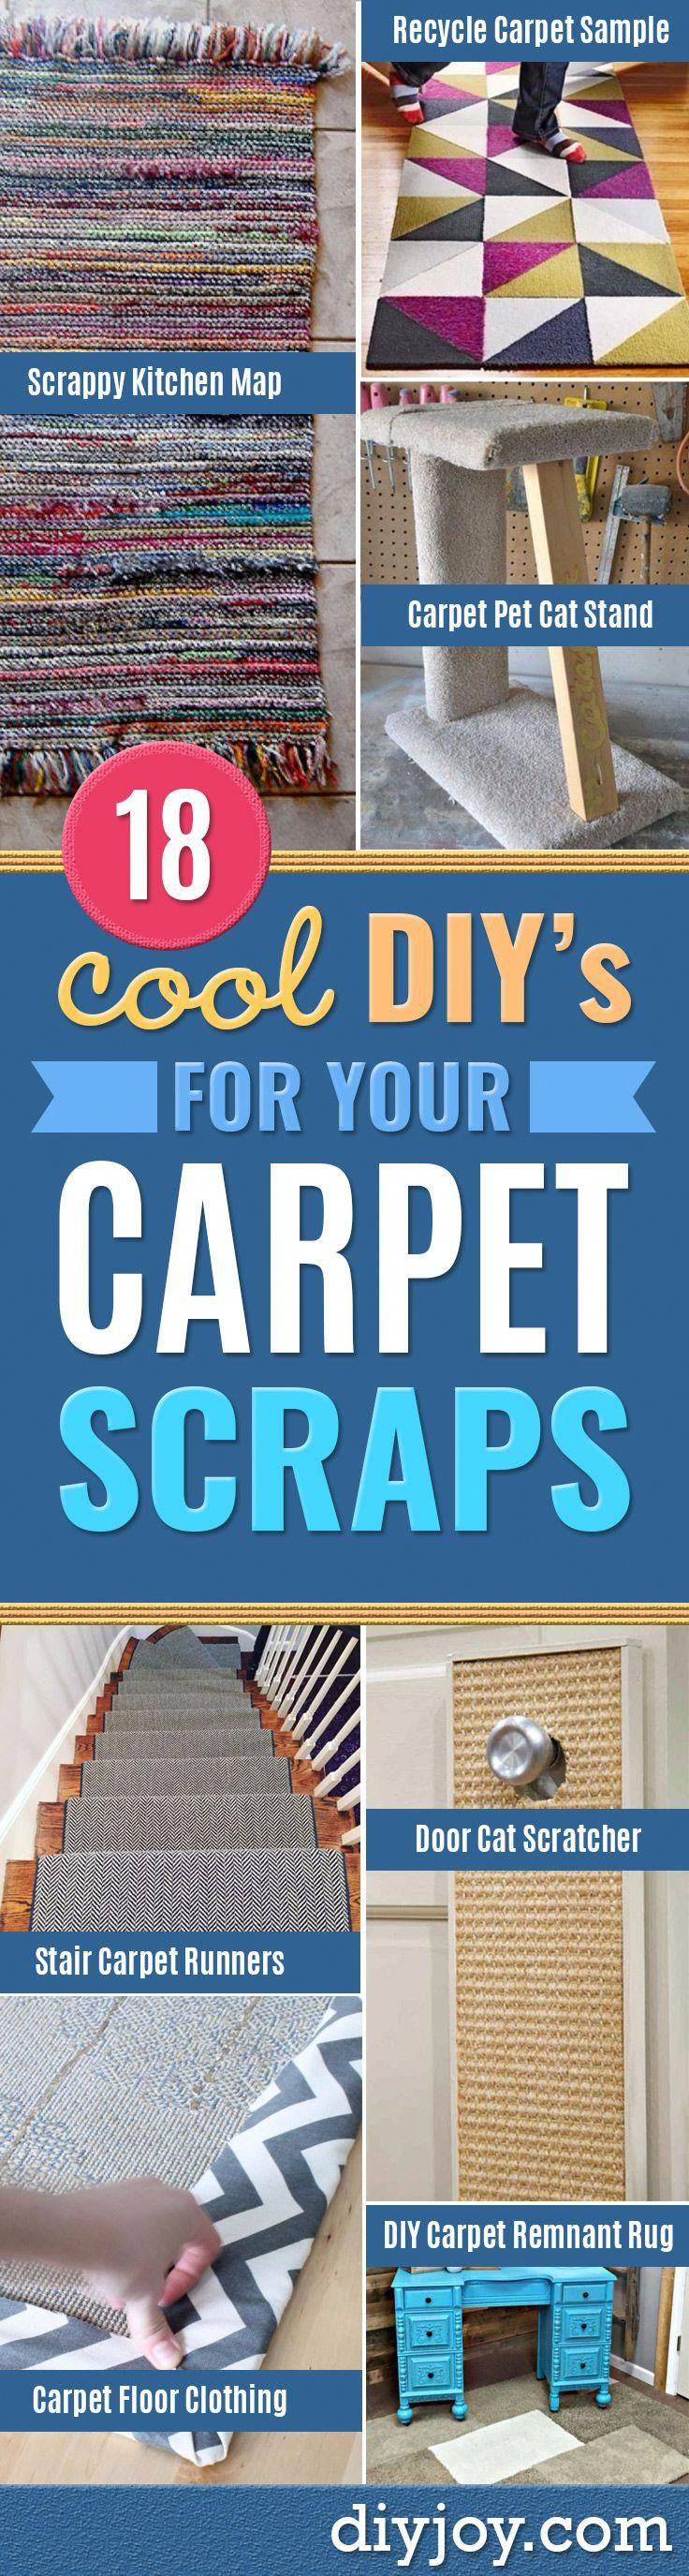 DIY Ideas With Carpet Scraps - Cool Crafts To Make With Old Carpet Remnants - Ch...